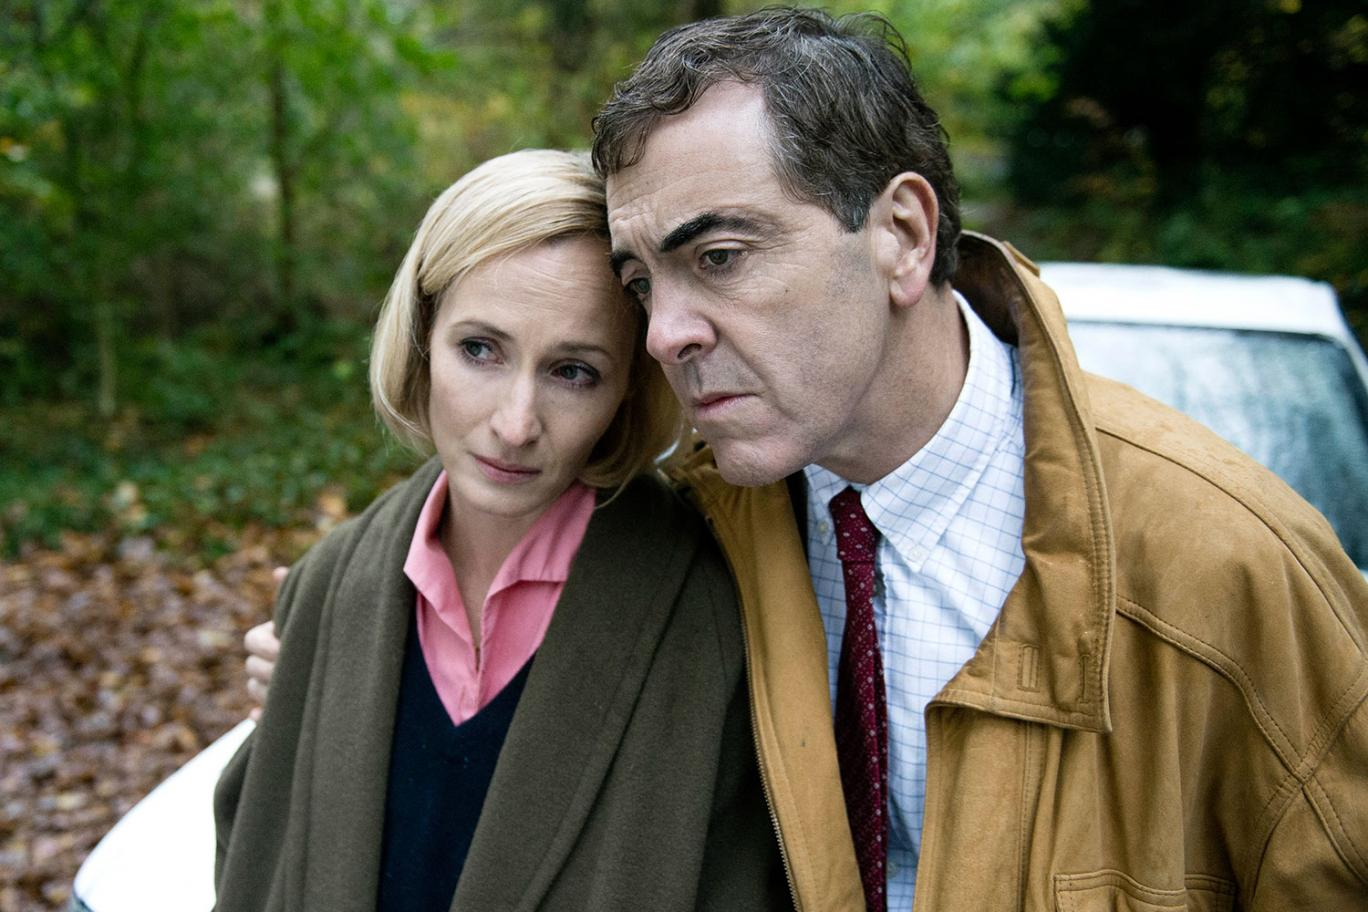 James Nesbitt and Genevieve O'Reilly as Colin Howell and Hazel Buchanan in The Secret ITV / Hat Trick Productions